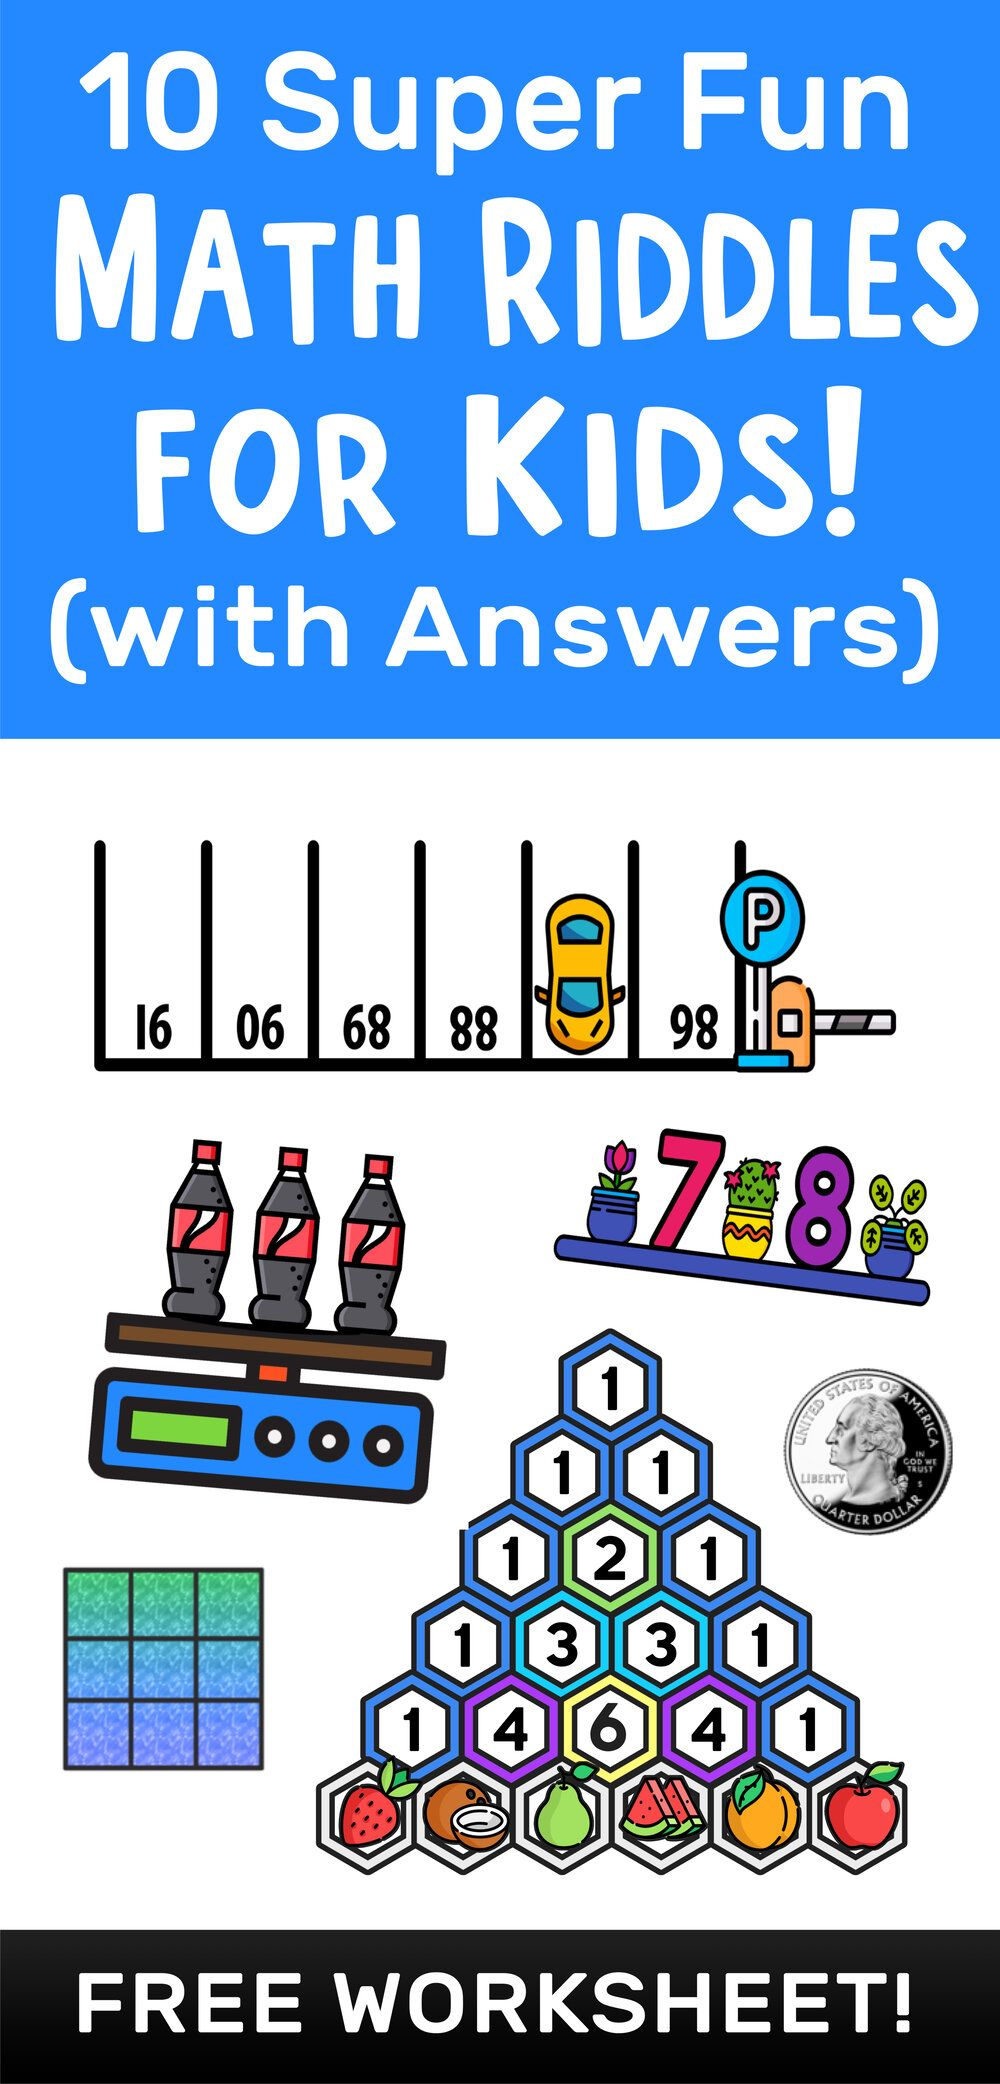 10 Super Fun Math Riddles for Kids! (with Answers) in 2020